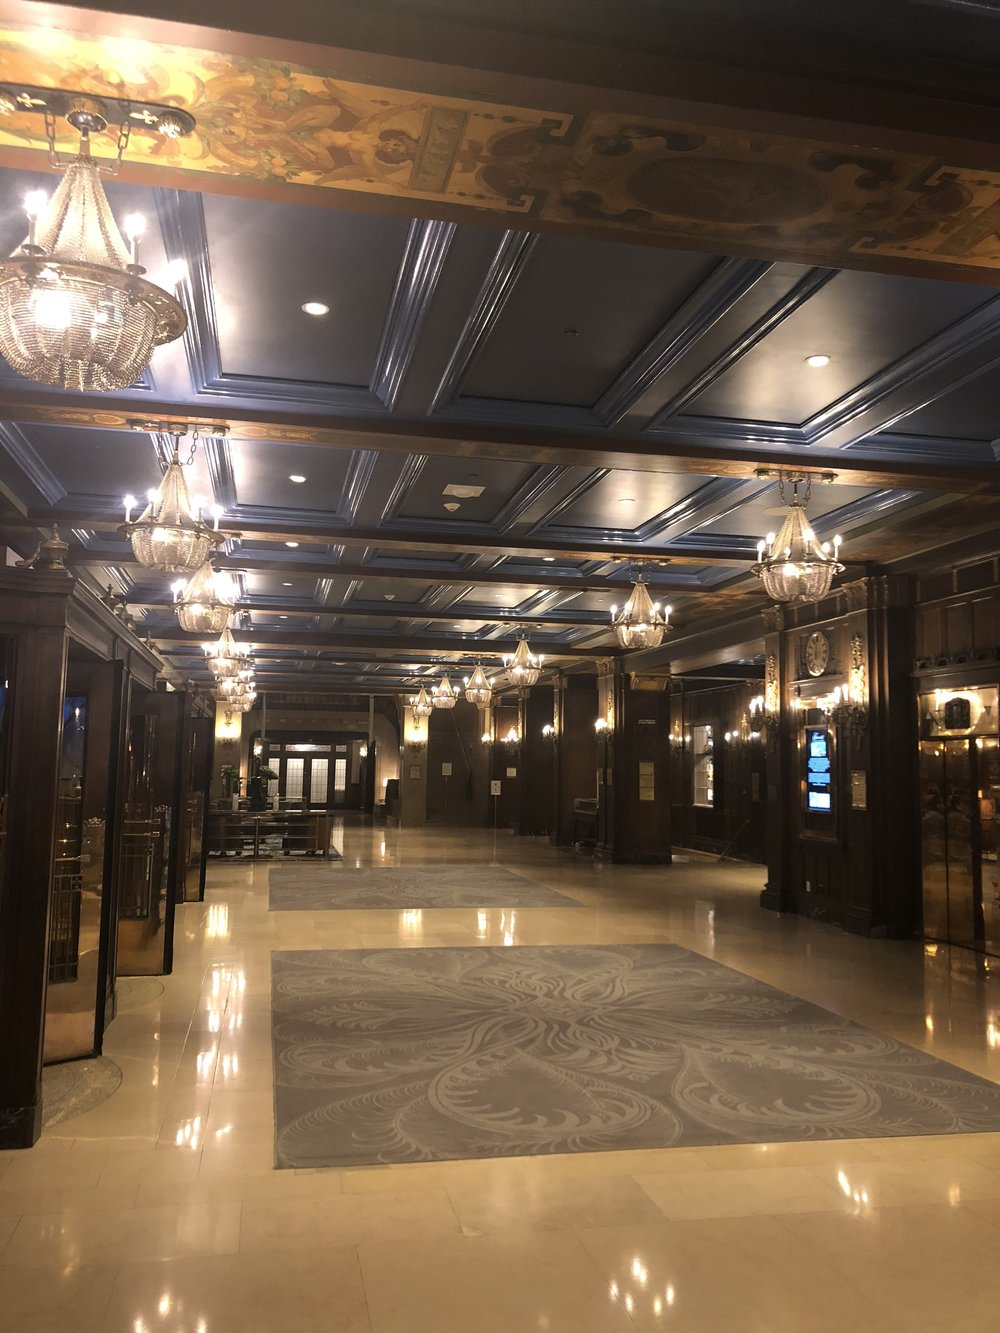 The lobby of Le Chateau Frontnec